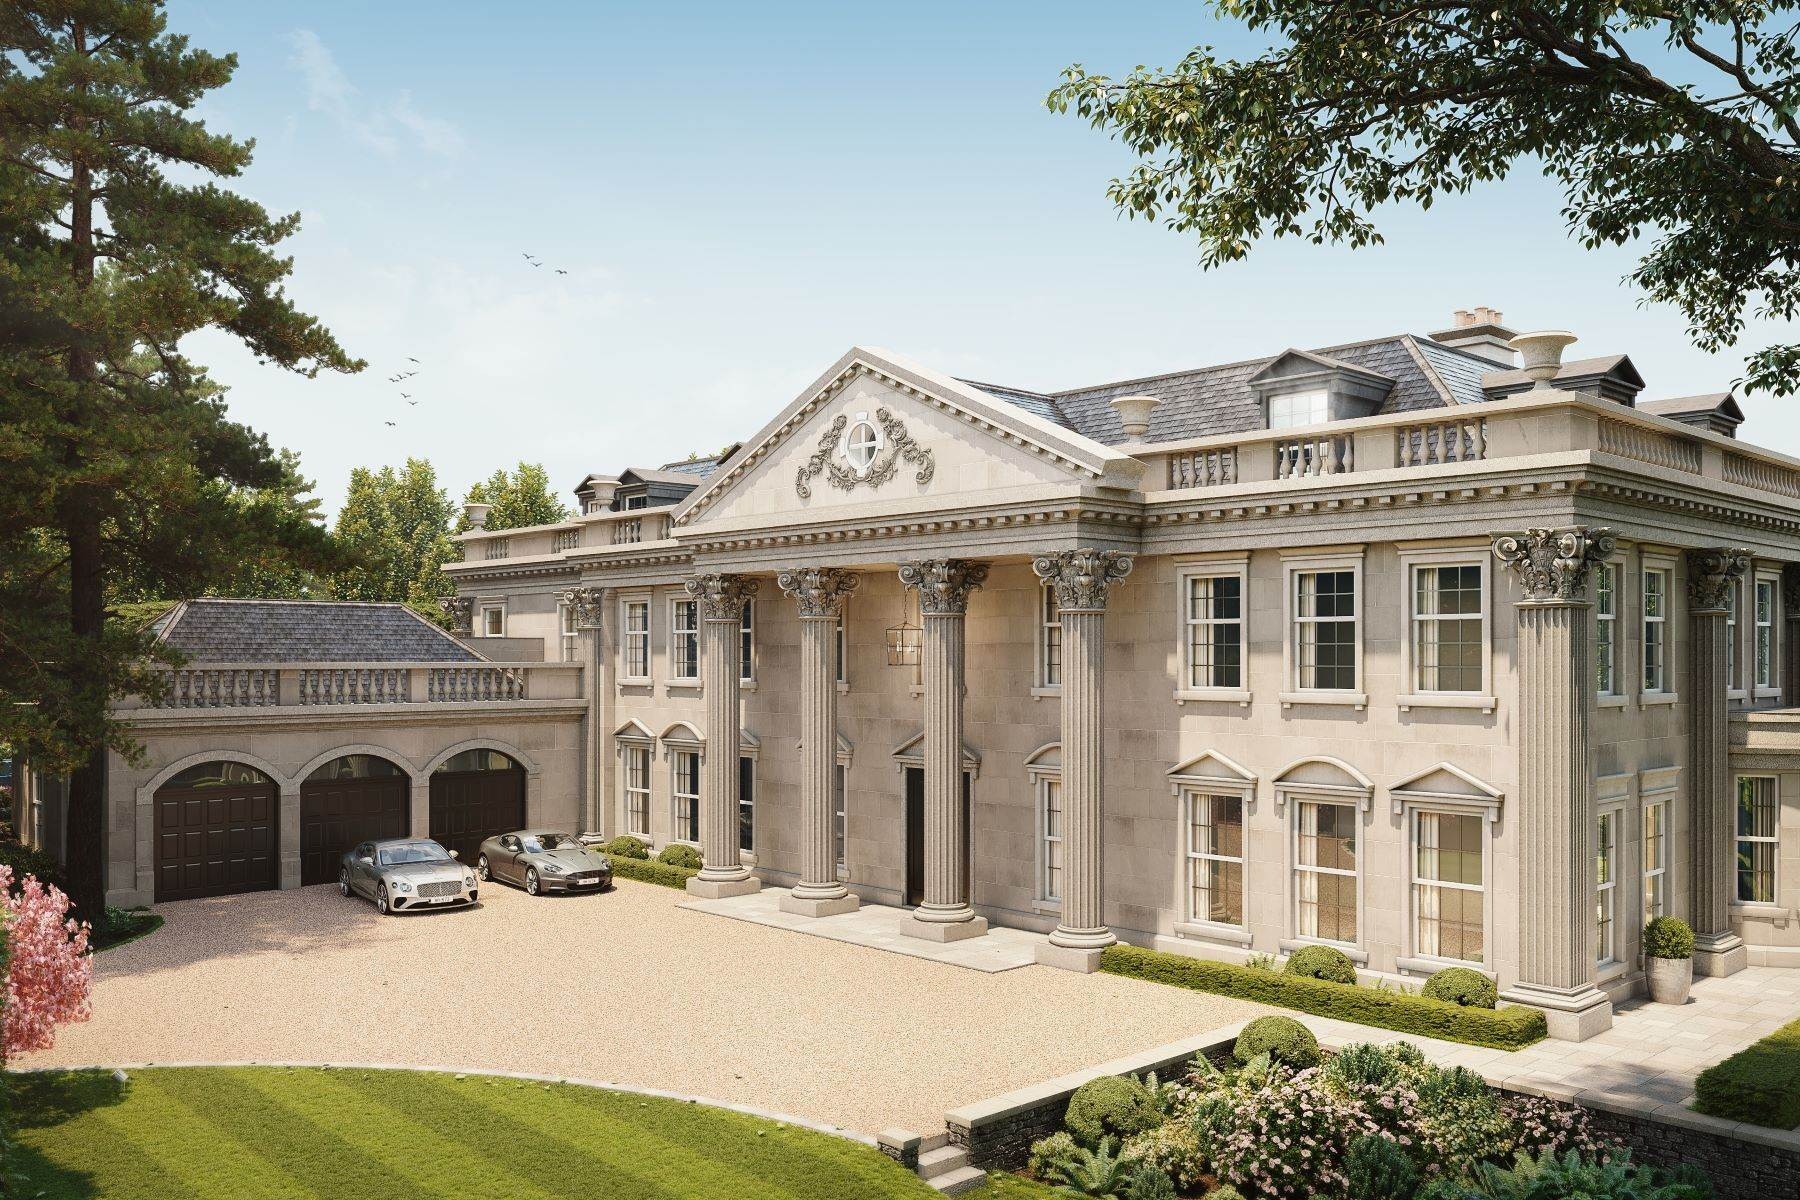 Single Family Homes for Sale at Hampton Hall Queens Drive London, England KT22 0PB United Kingdom